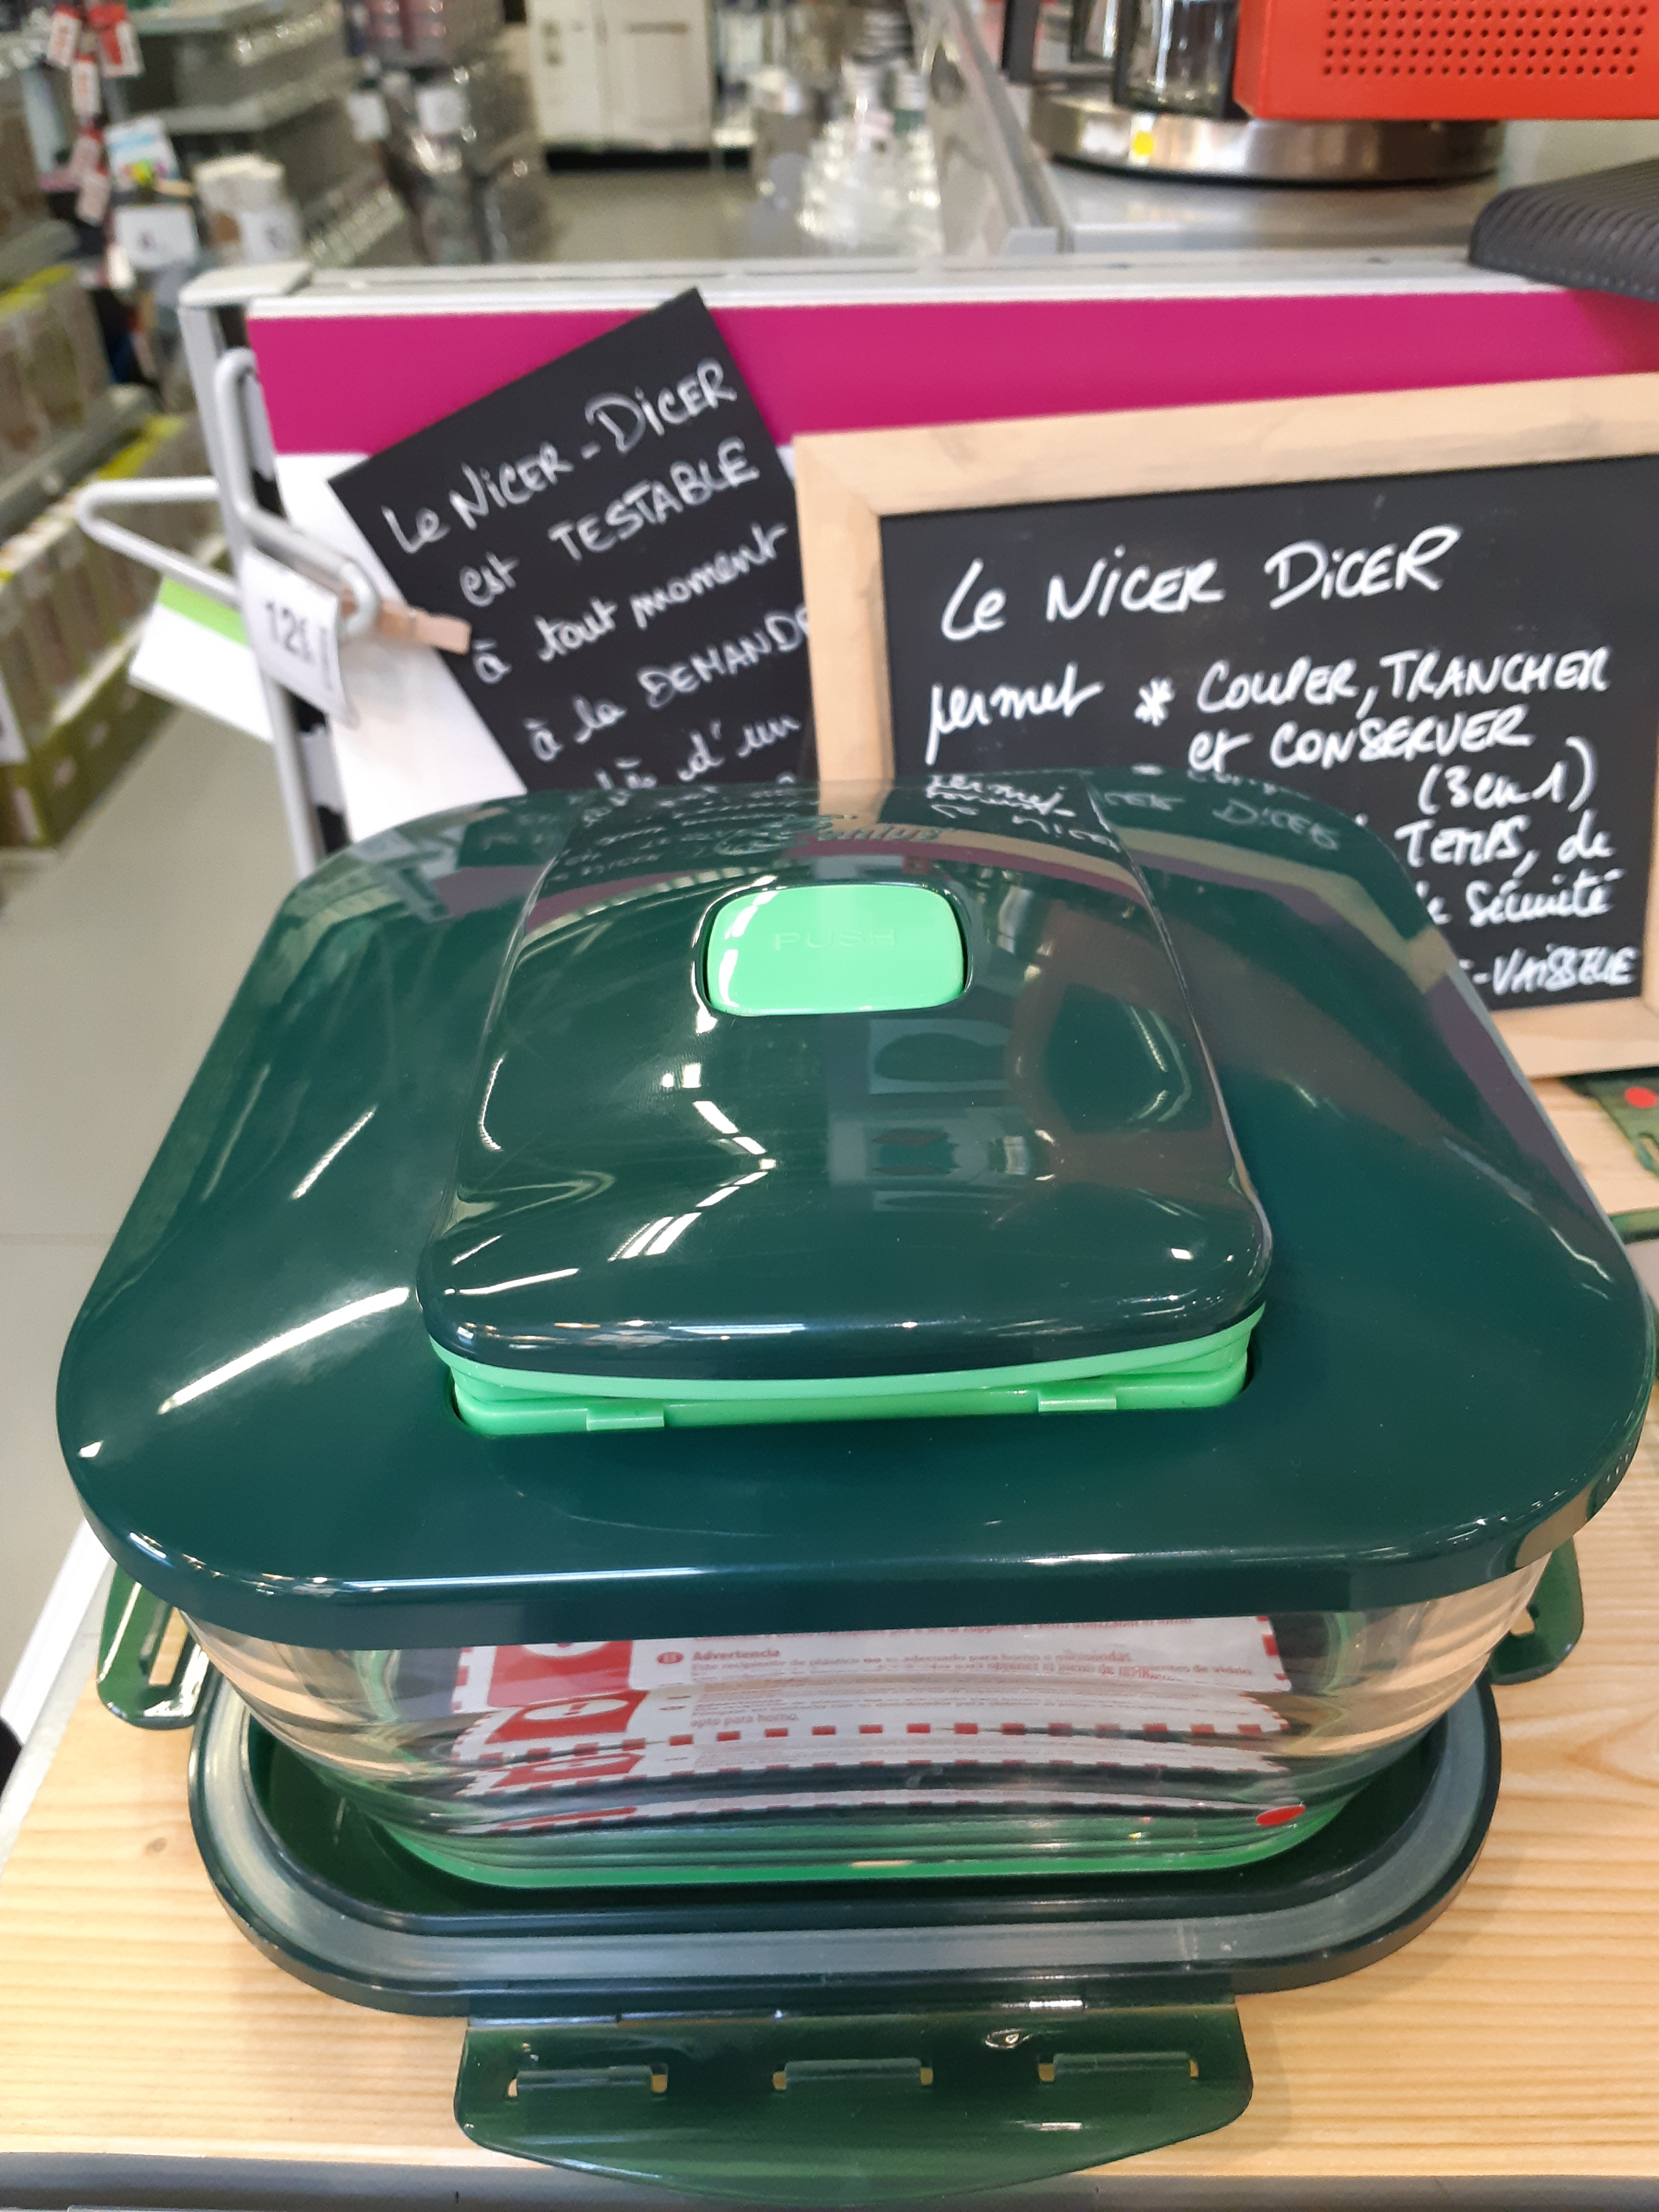 Le Nicer Dicer pour Maman!!!!!!!